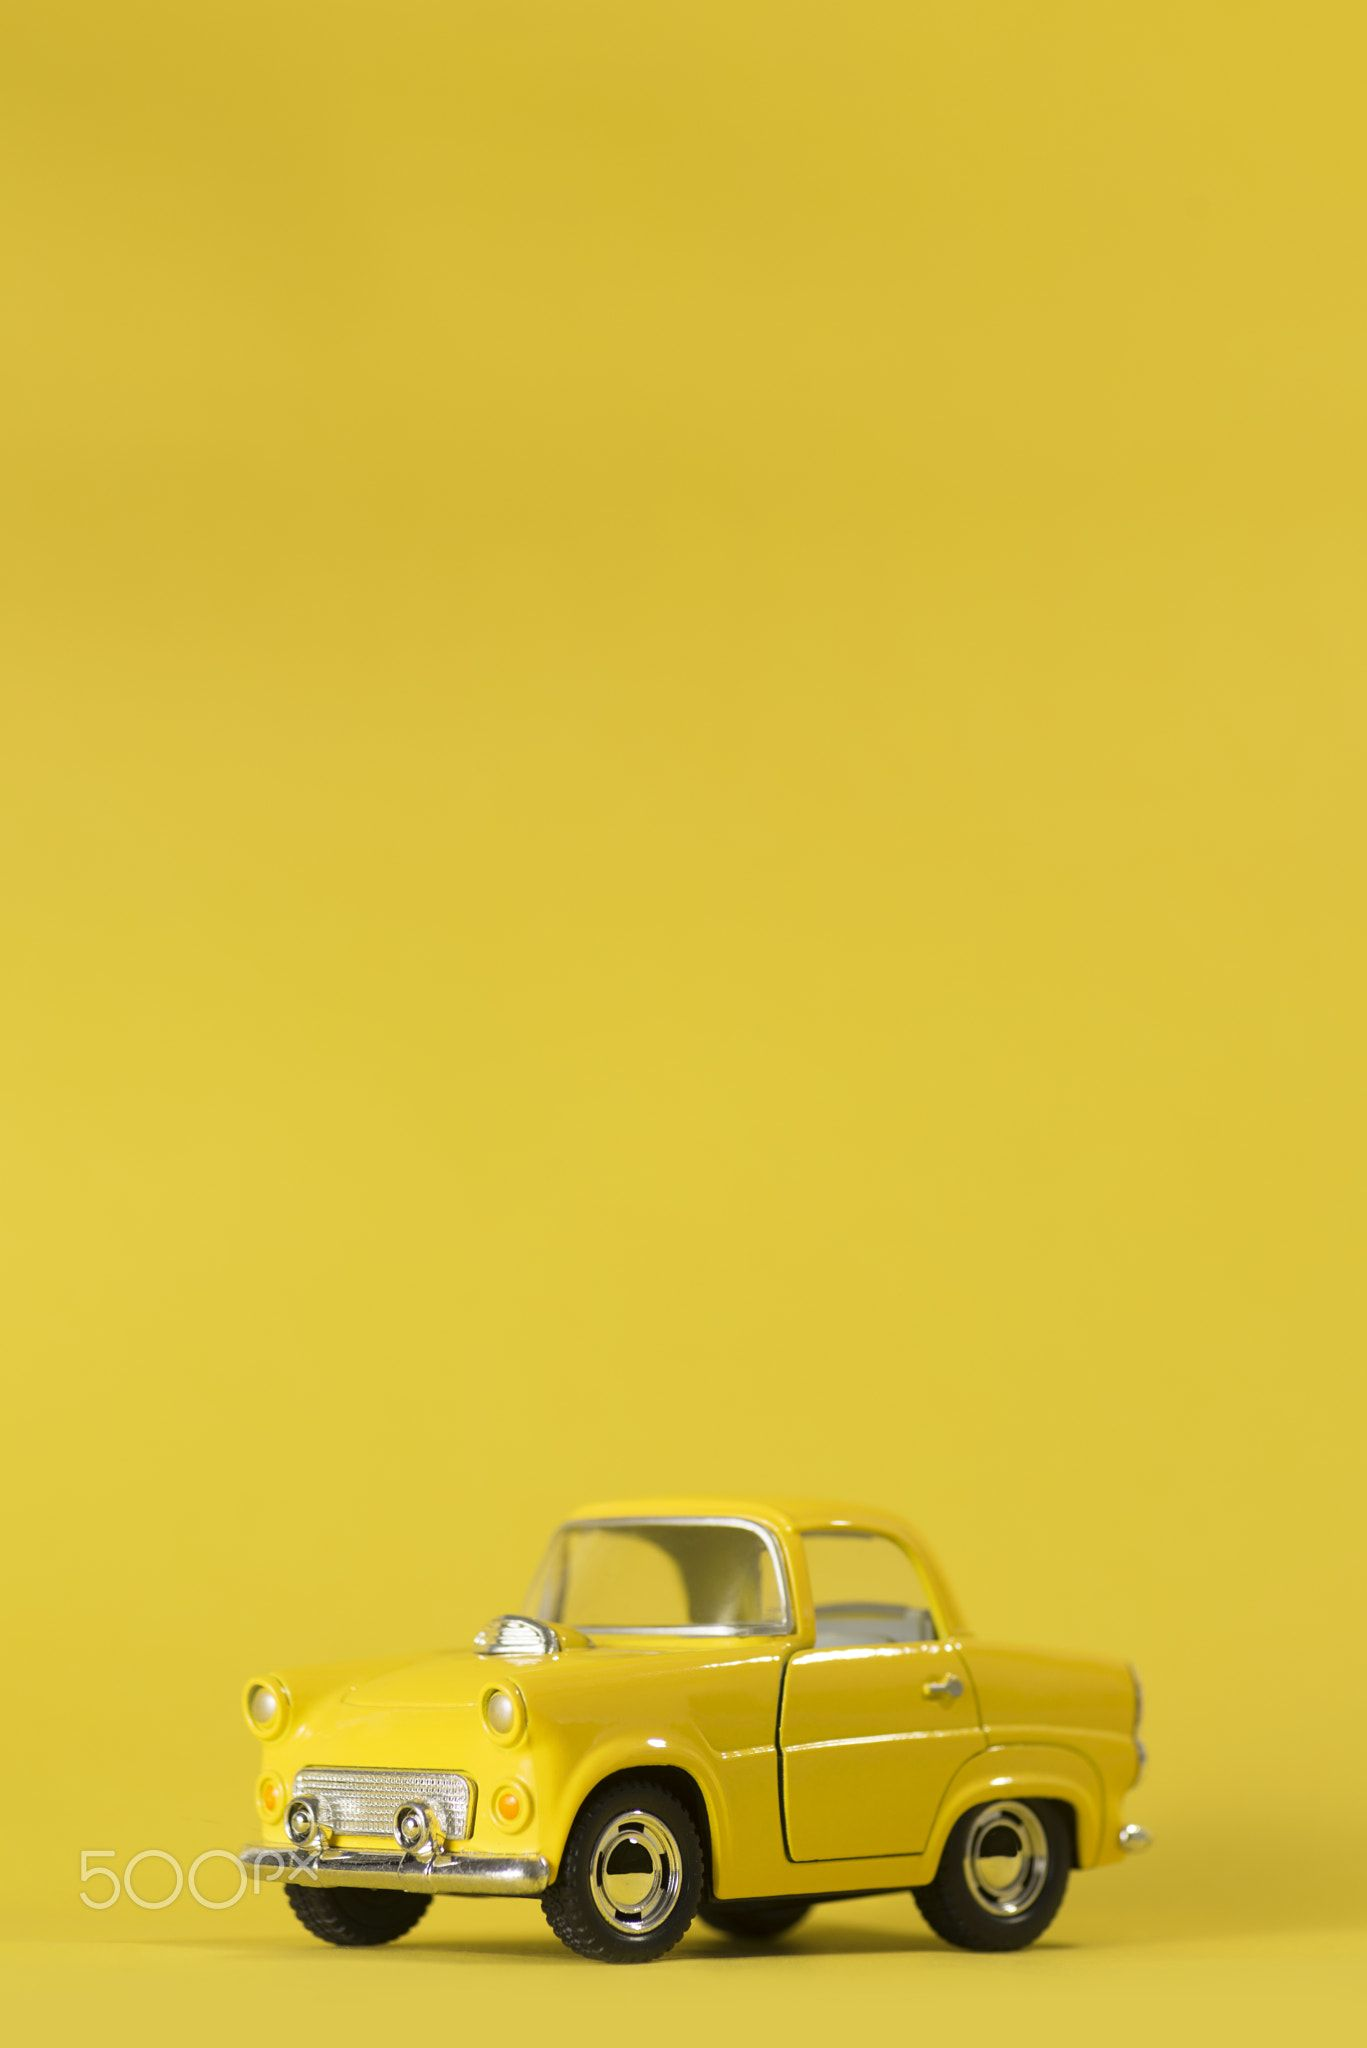 Yellow Toy Car Yellow Toy Car On A Yellow Background In 2021 Yellow Wallpaper Yellow Background Yellow Photography